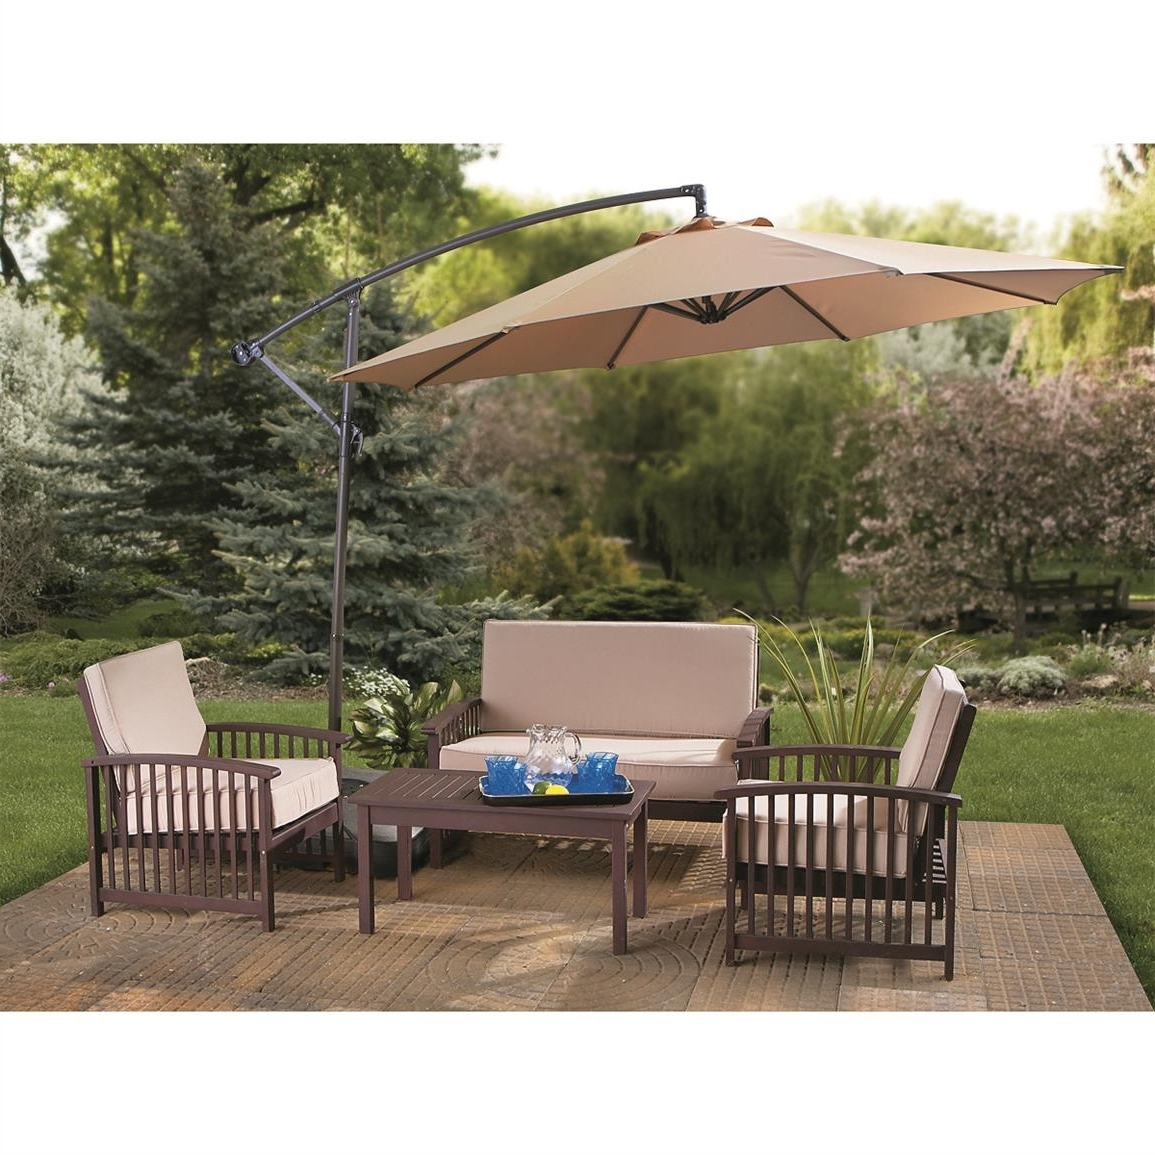 Favorite Cantilever Patio Umbrellas Intended For Castlecreek 10' Cantilever Patio Umbrella – 234178, Patio Umbrellas (View 7 of 20)